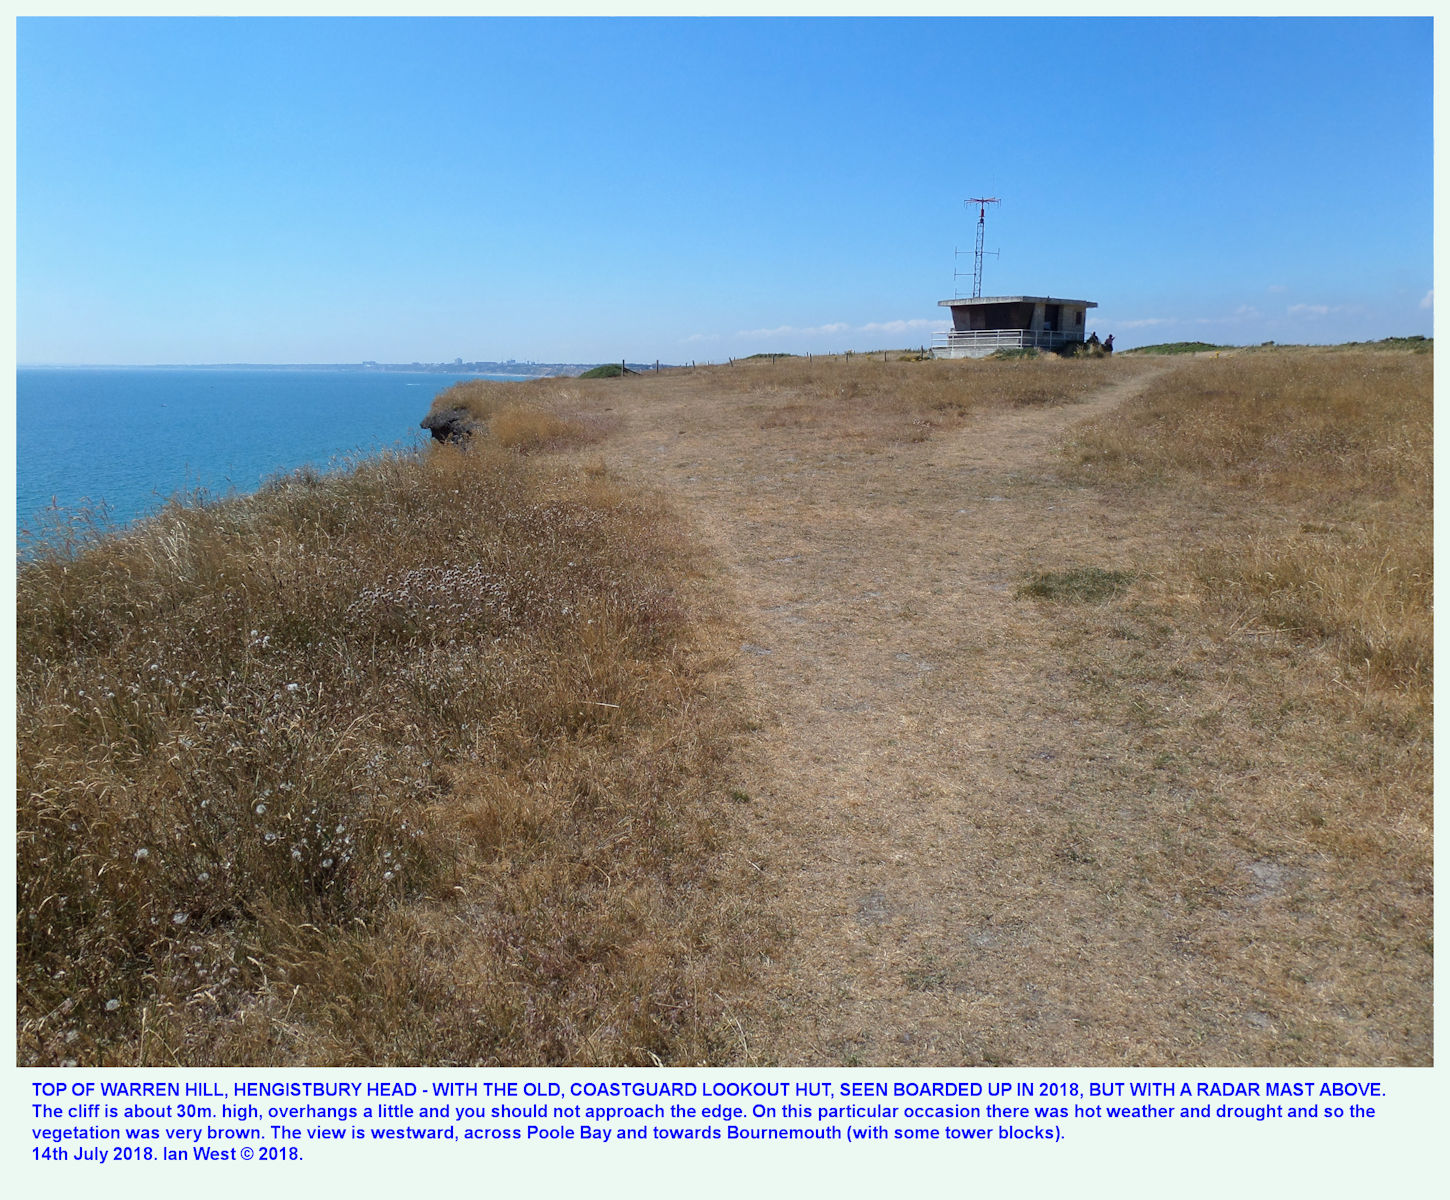 The old lookout hut at the top of Warren Hill, Hengistbury Head, with a radar mast on top, 14th July 2018